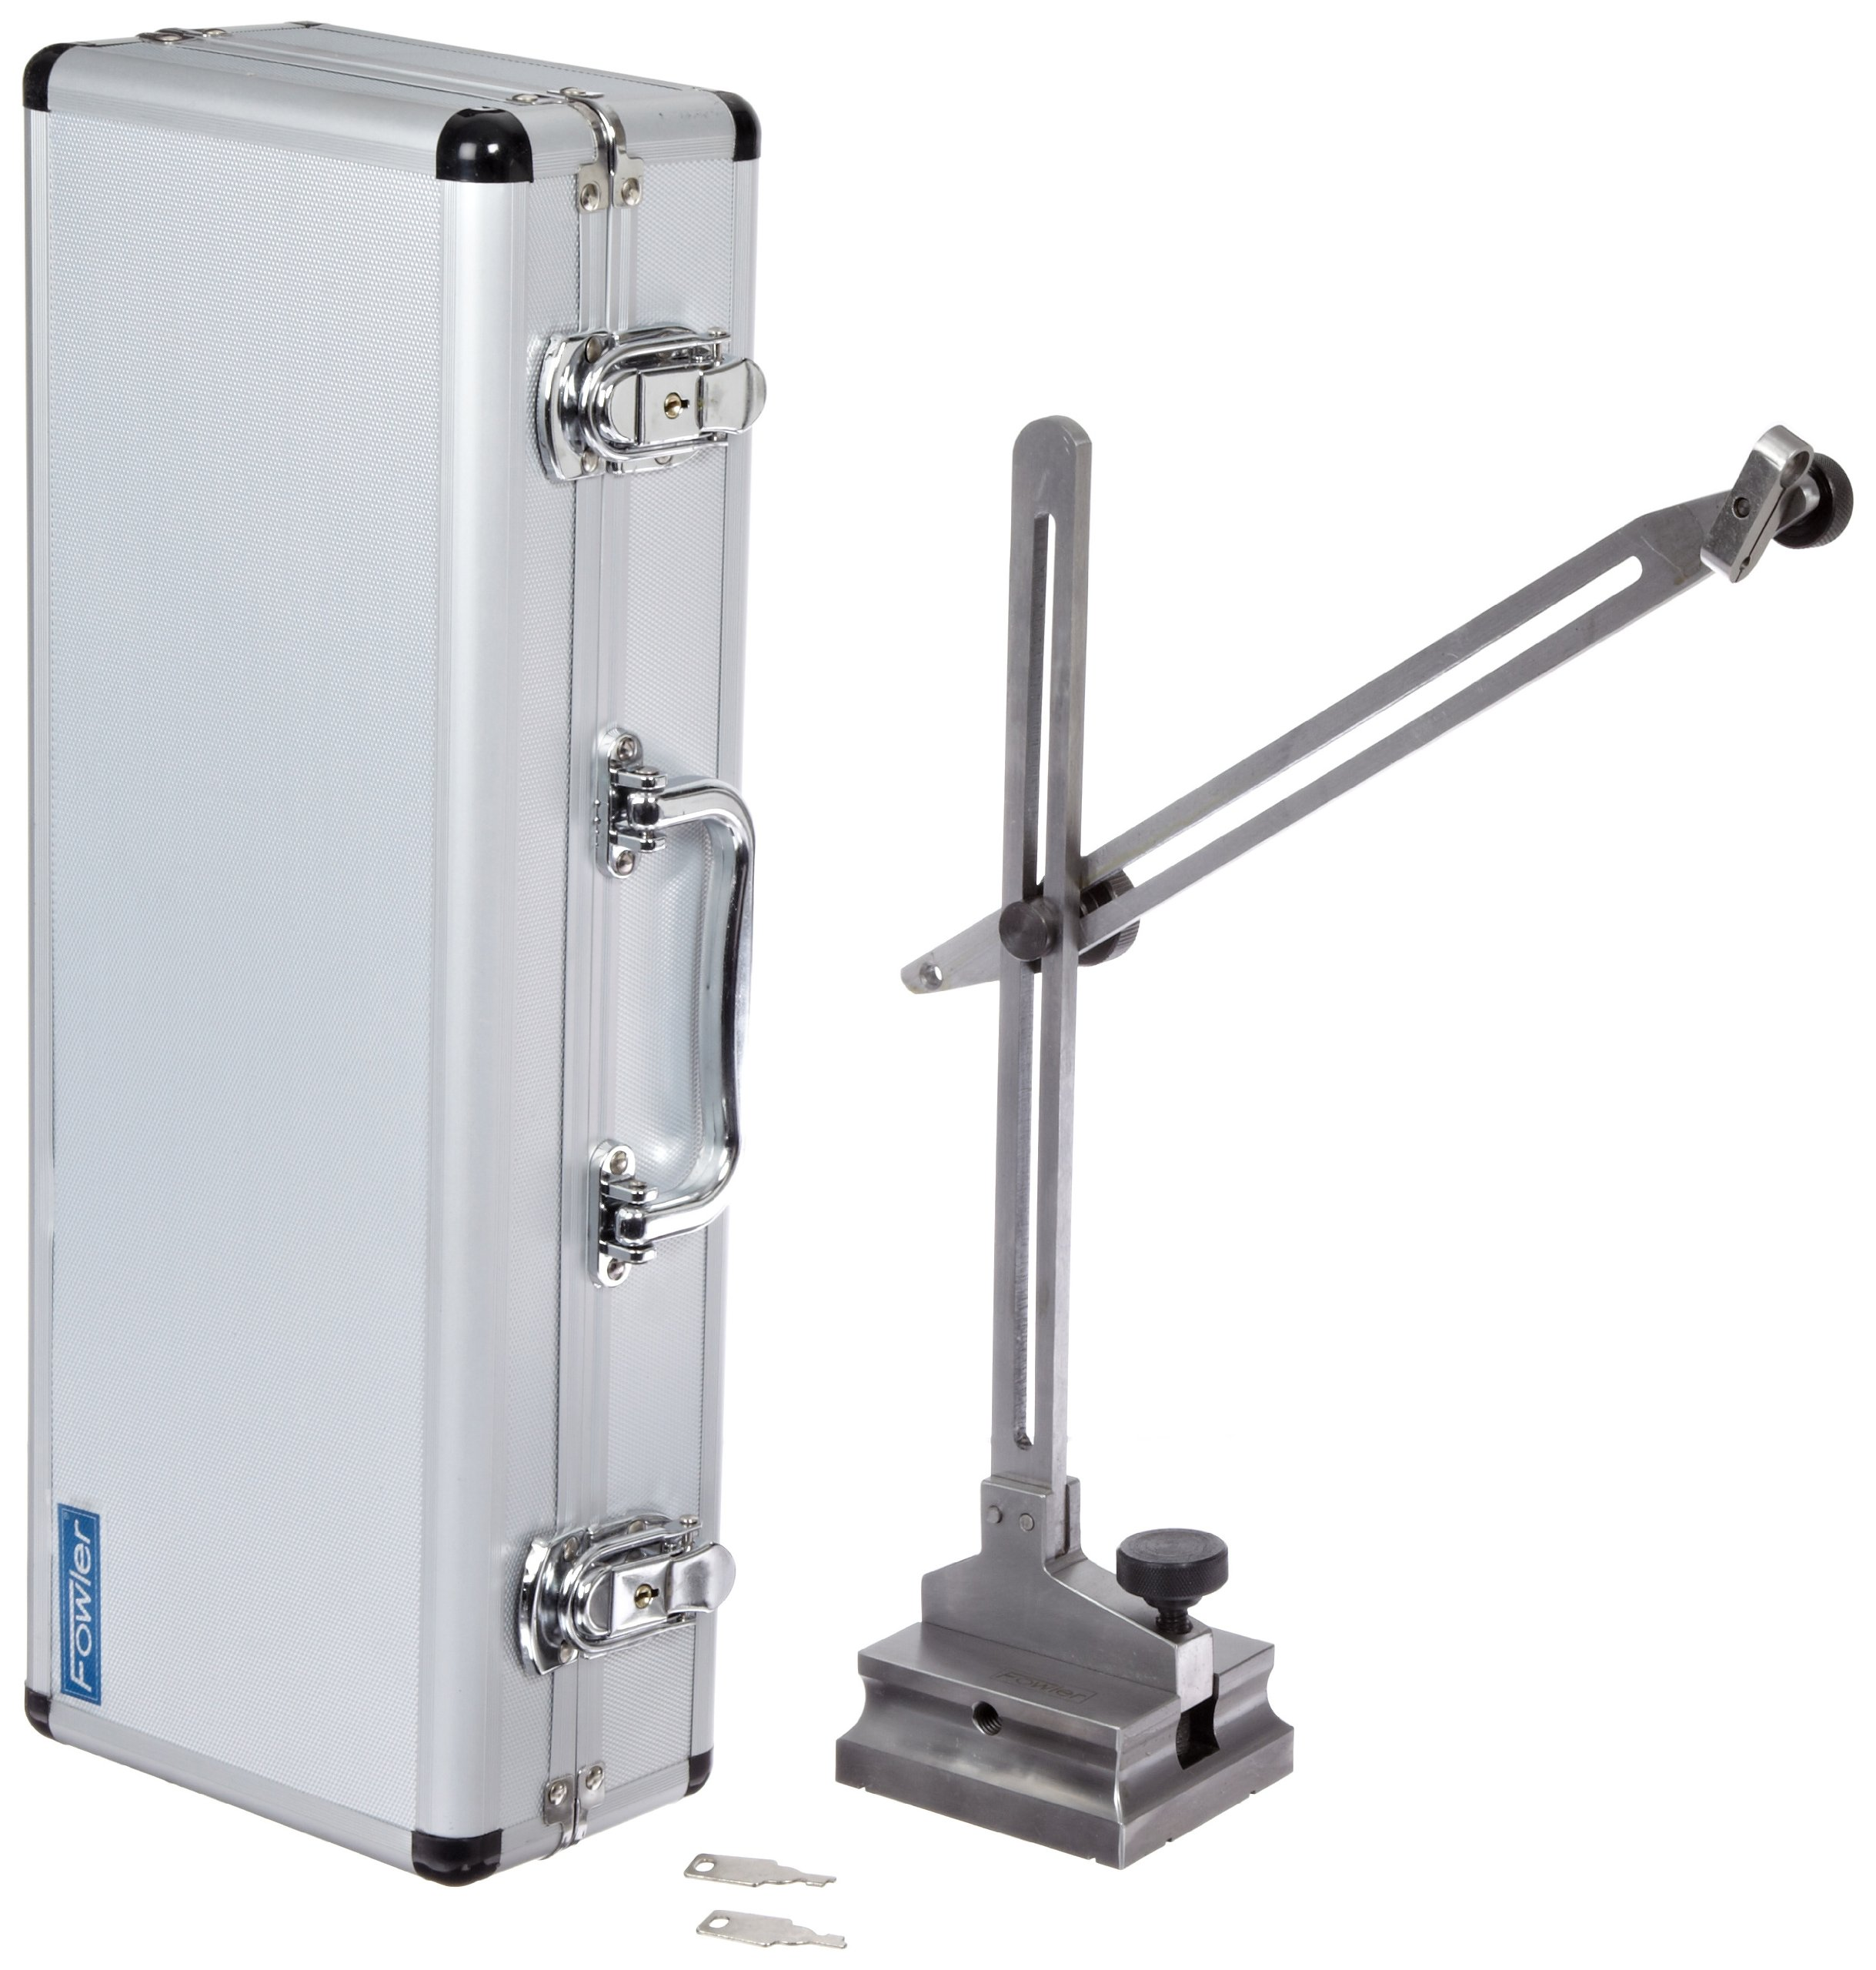 Fowler 52-620-717 Stainless Steel Workshop Transfer Stand, 12'' Overall Height